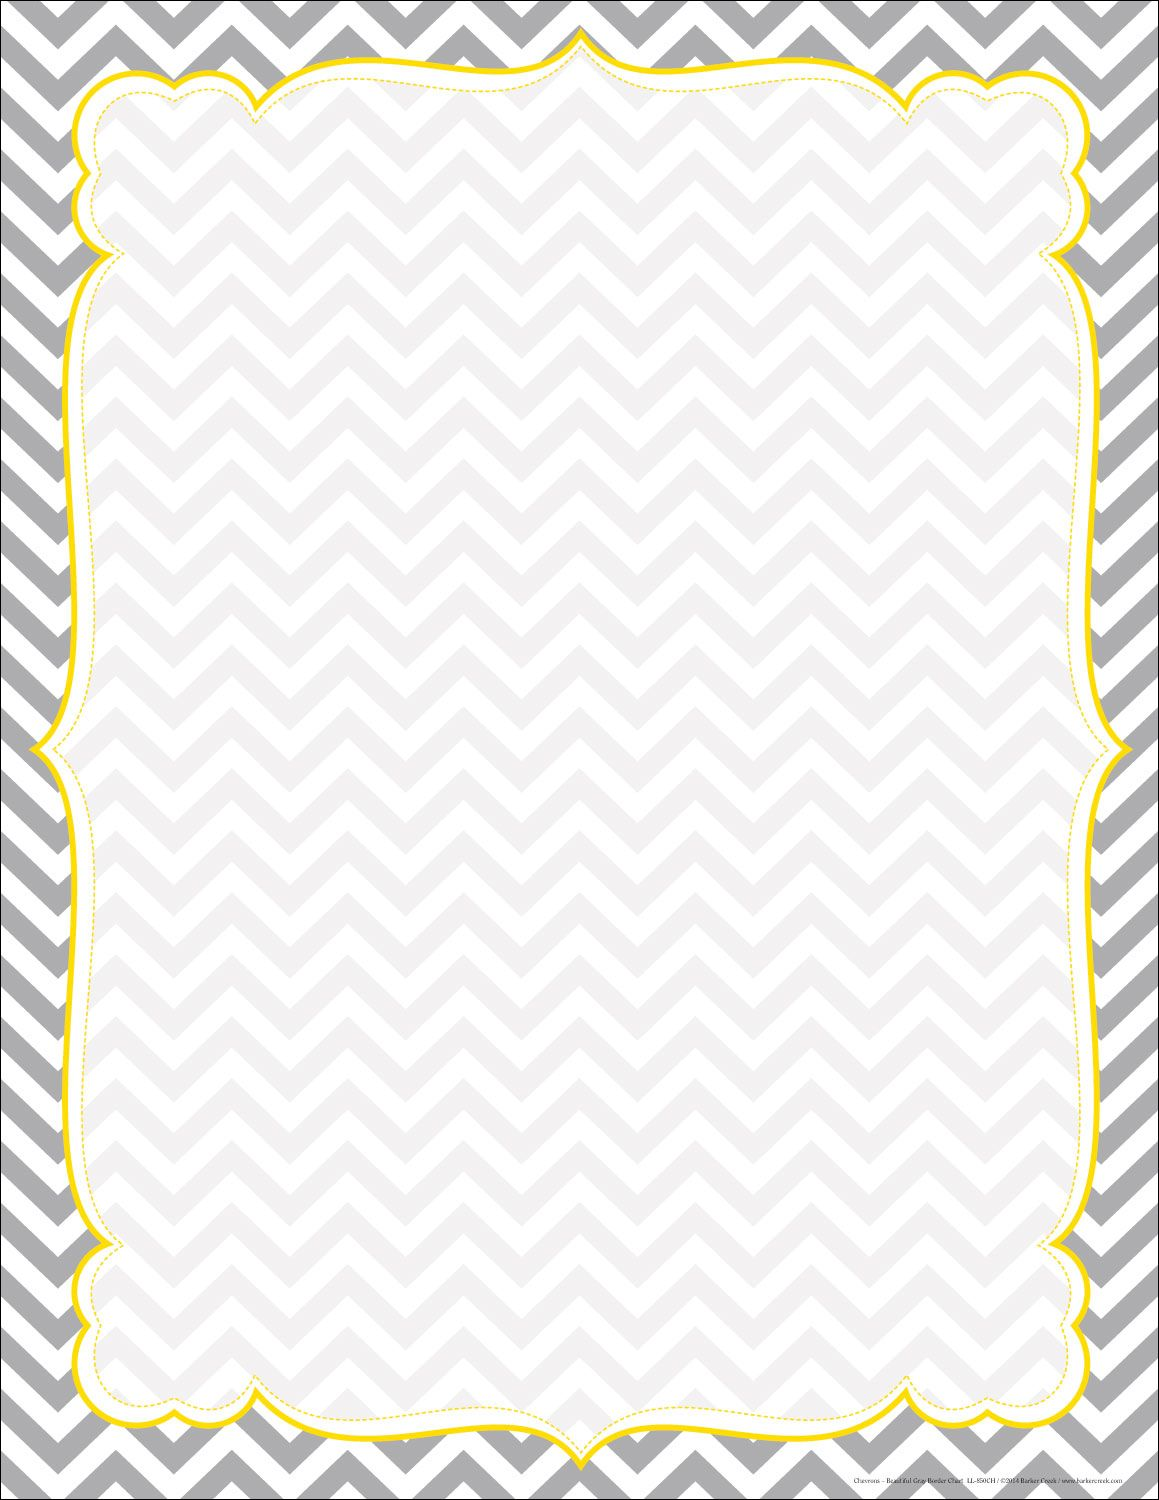 NEW! Chevron.